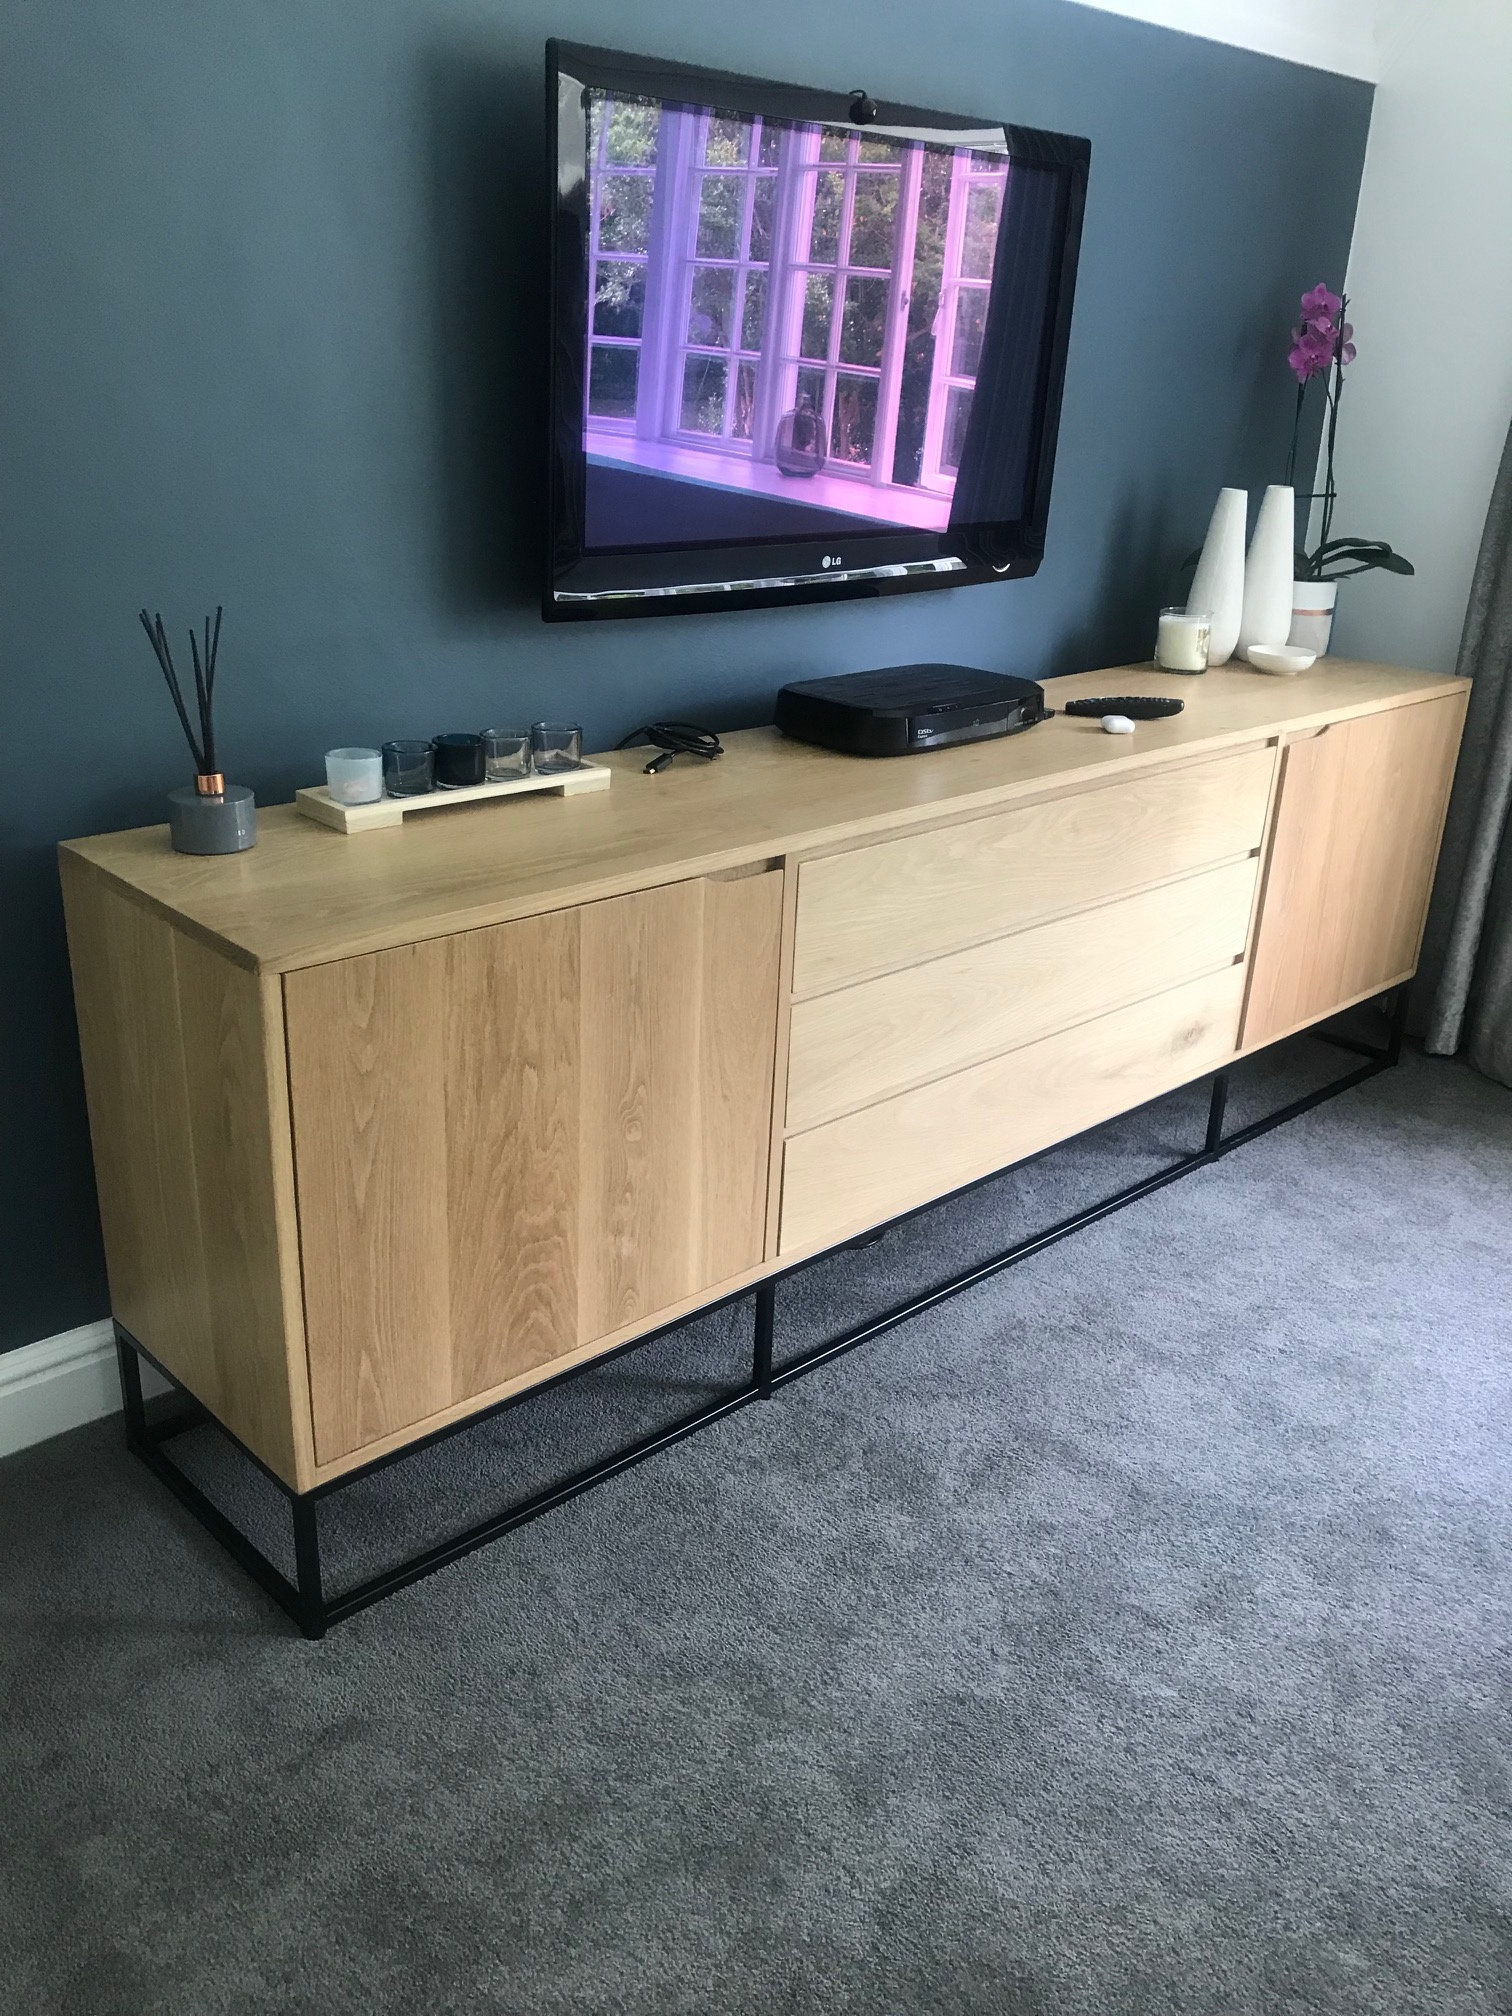 Oak on steel legs server